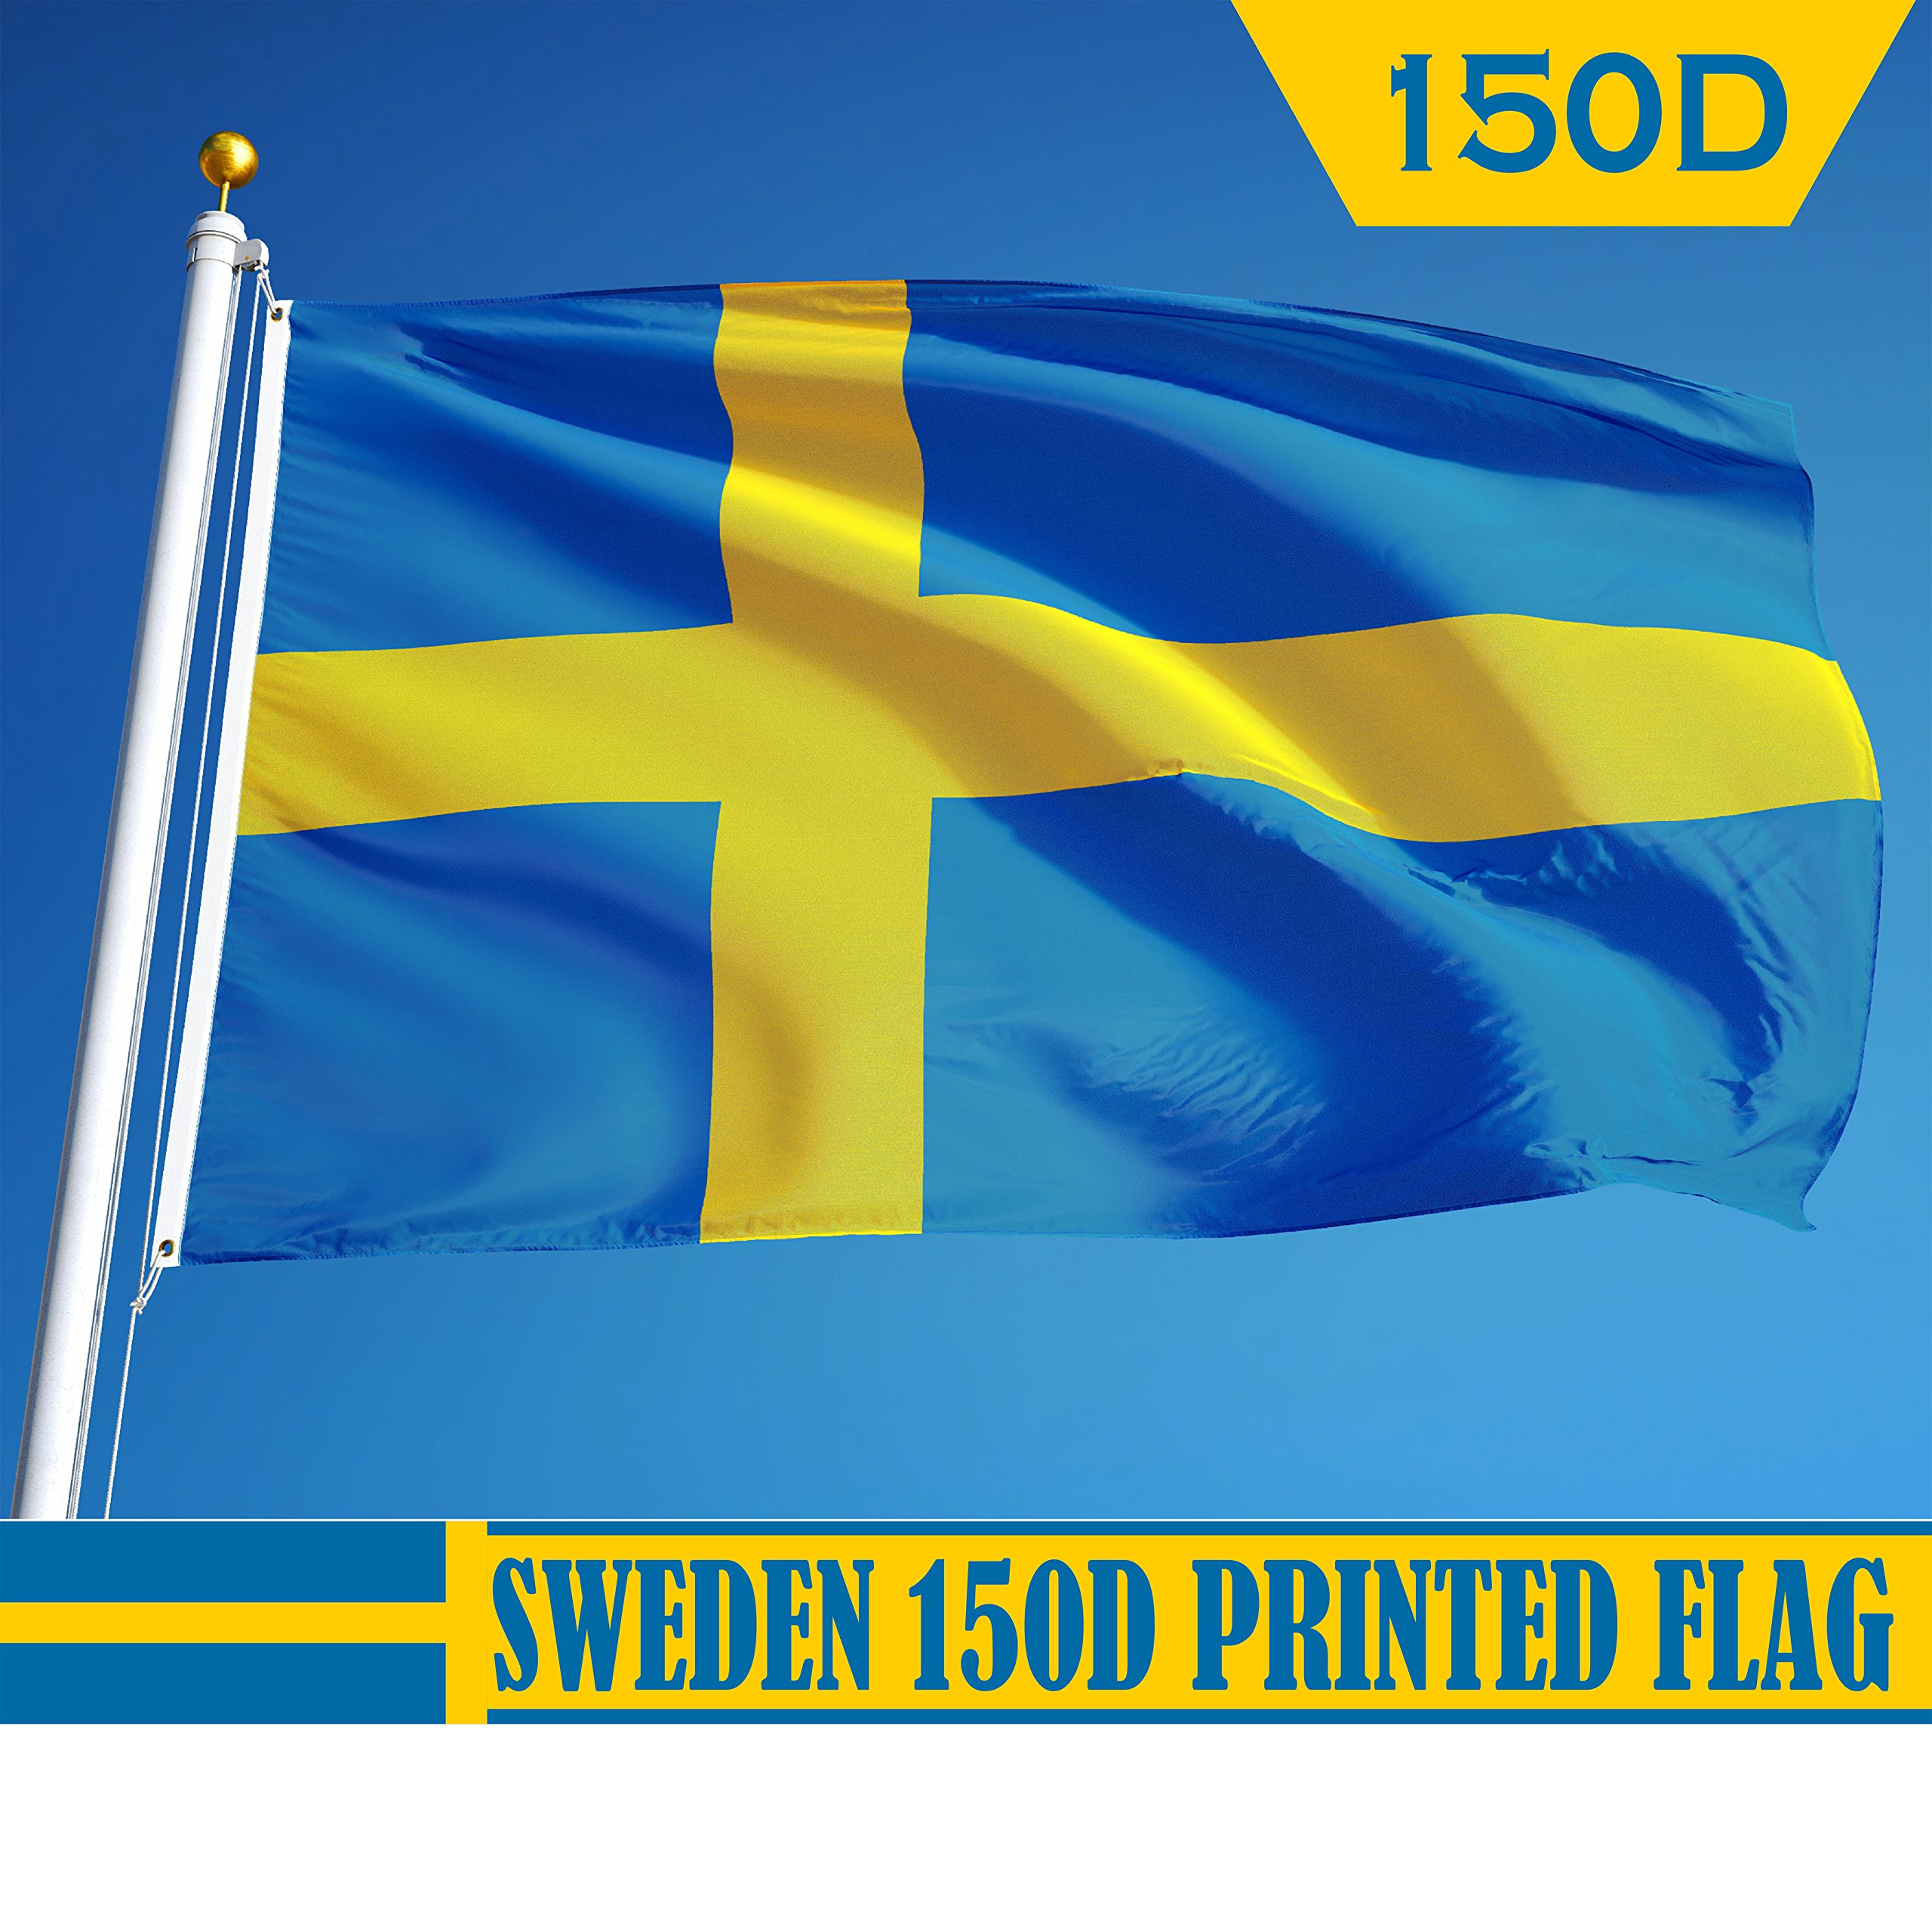 G128 - Sweden Swedish Flag 3x5 ft Printed Brass Grommets 150D Quality Polyester Flag Indoor/Outdoor - Much Thicker and More Durable than 100D and 75D Polyester